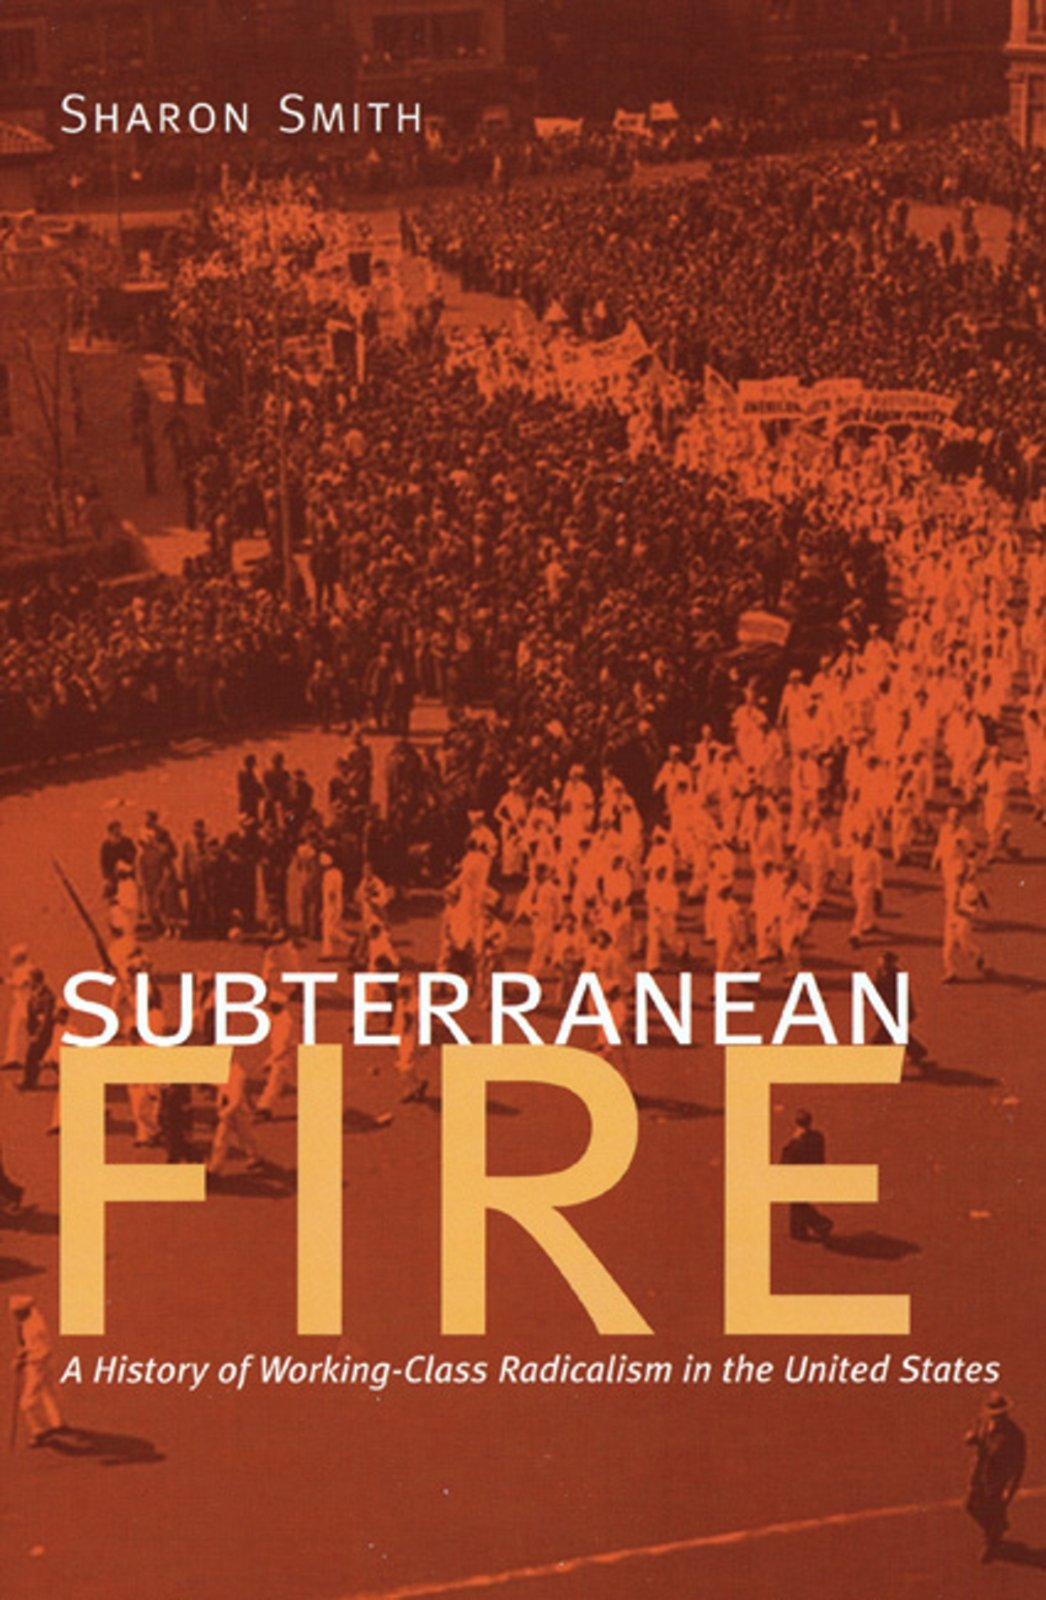 Download Subterranean Fire: A History of Working-Class Radicalism in the United States pdf